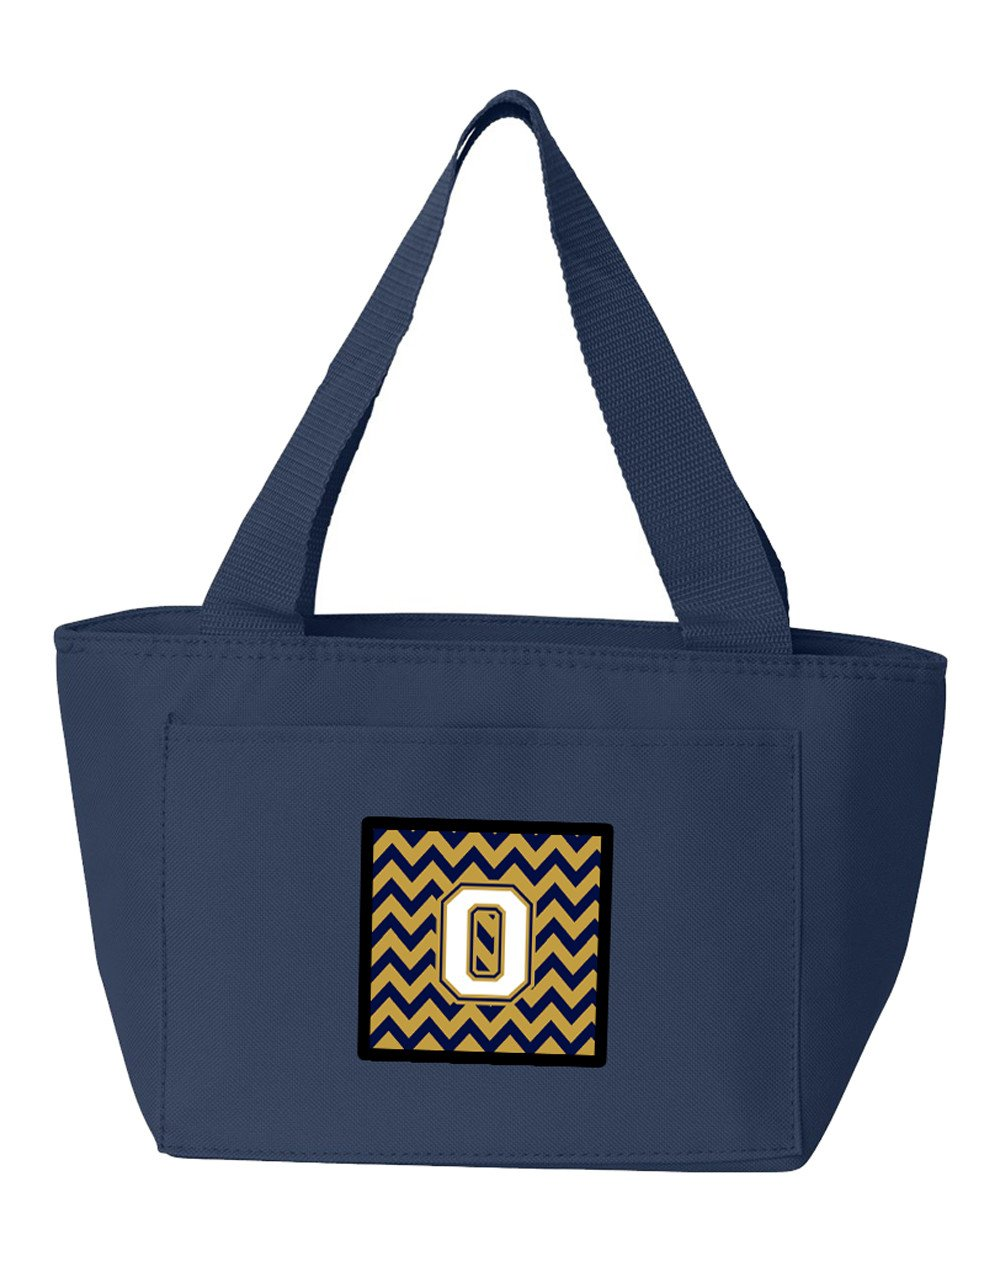 Letter O Chevron Navy Blue and Gold Lunch Bag CJ1057-ONA-8808 by Caroline's Treasures